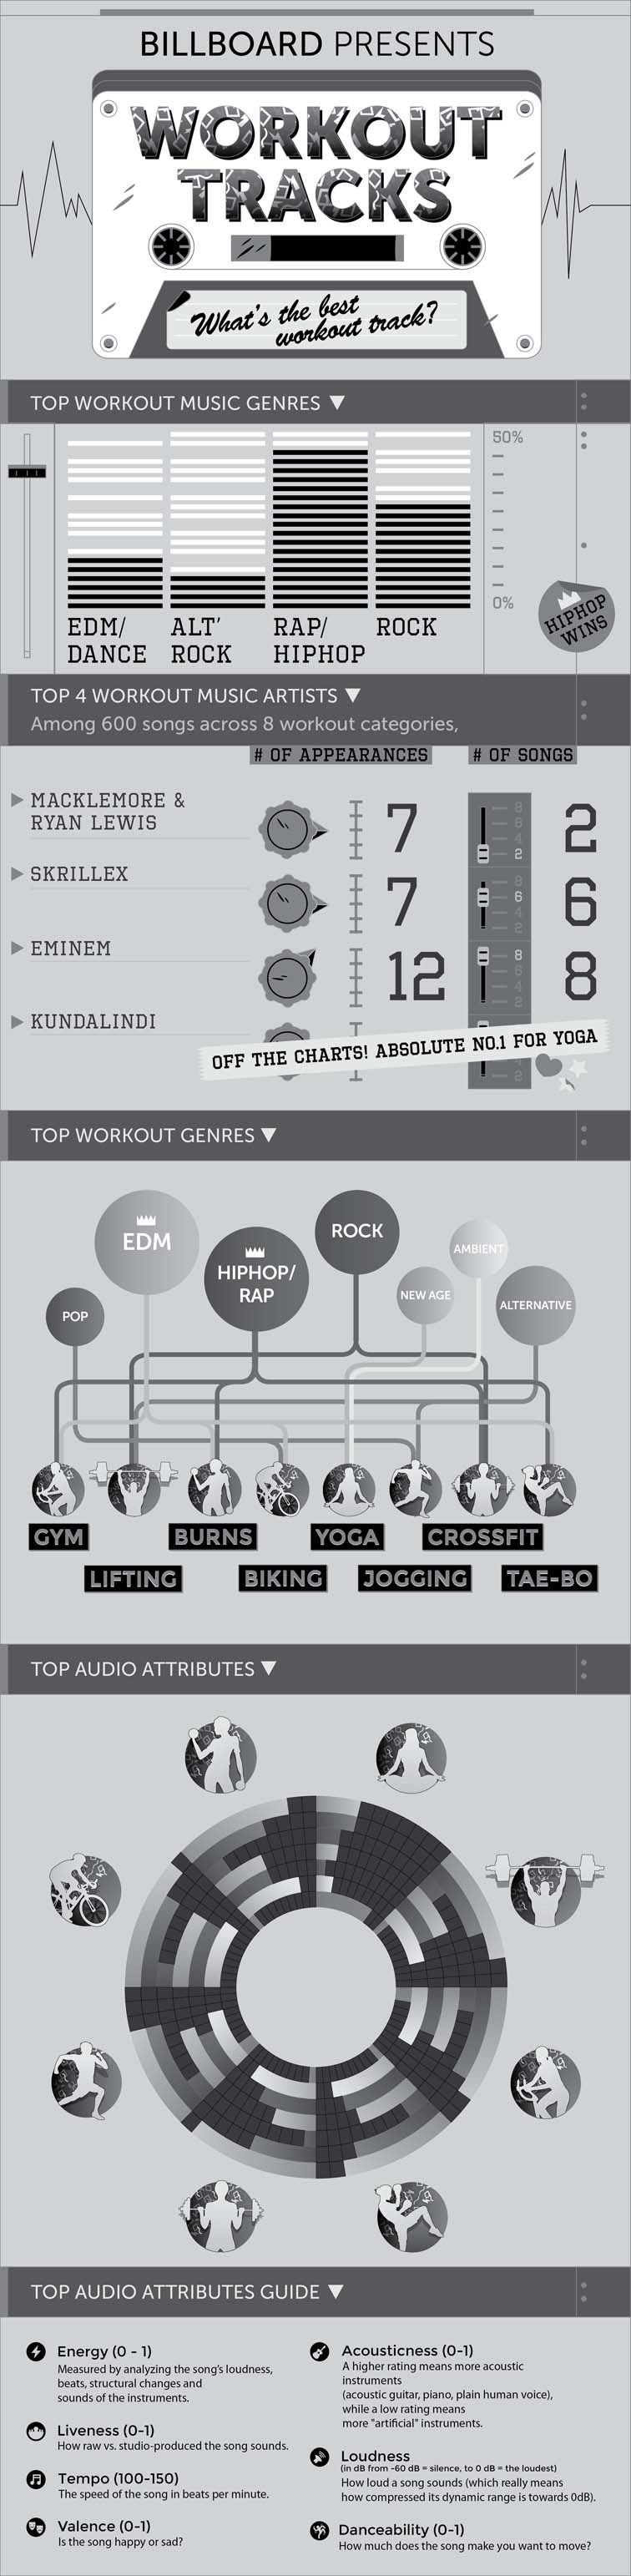 Exercise Playlist Infographic 5664